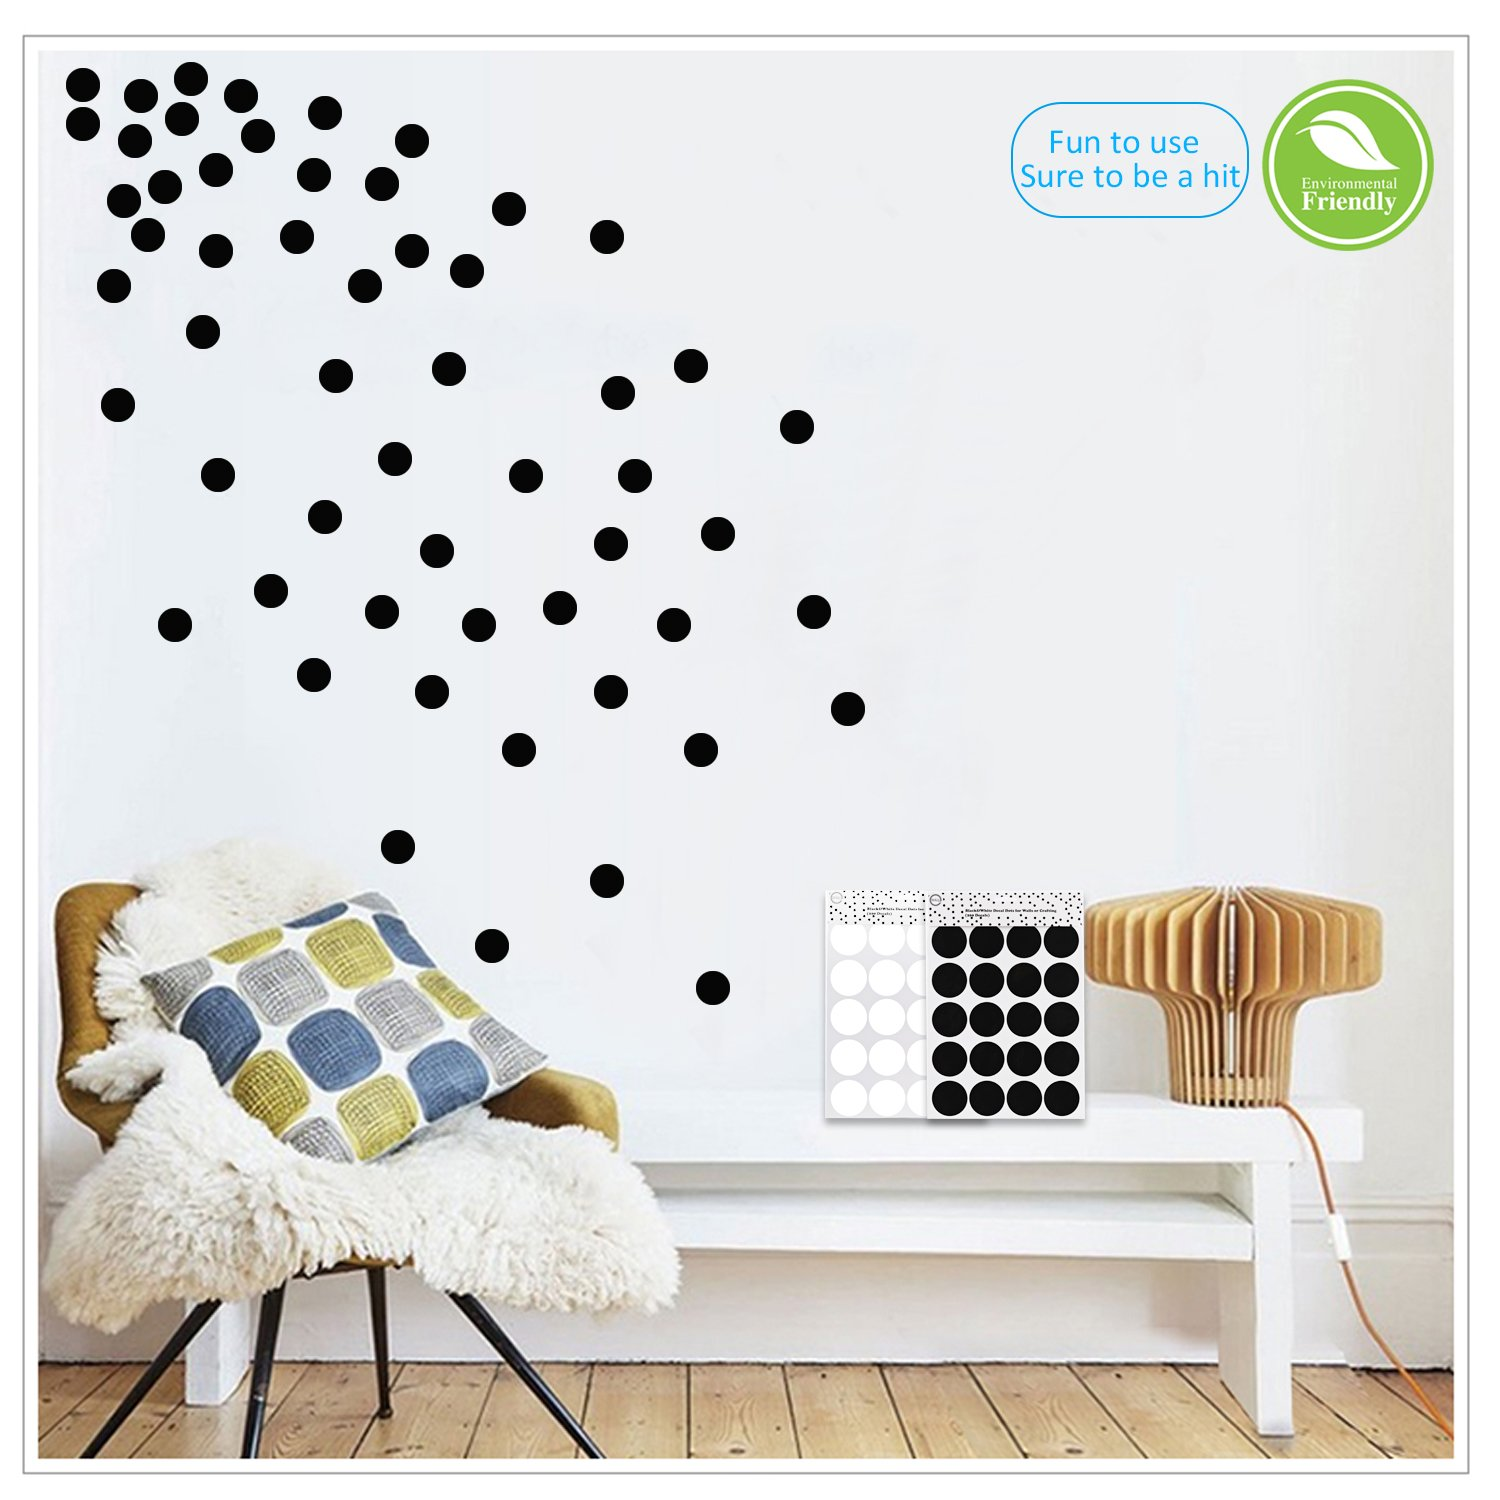 Black Wall Decals Polka Dots Vinyl Stickers Circle Art Wall Decor Self Adhesive Dots Removable Hanging Decorations for Nursery Room or Bedroom (200 Decals Circles)